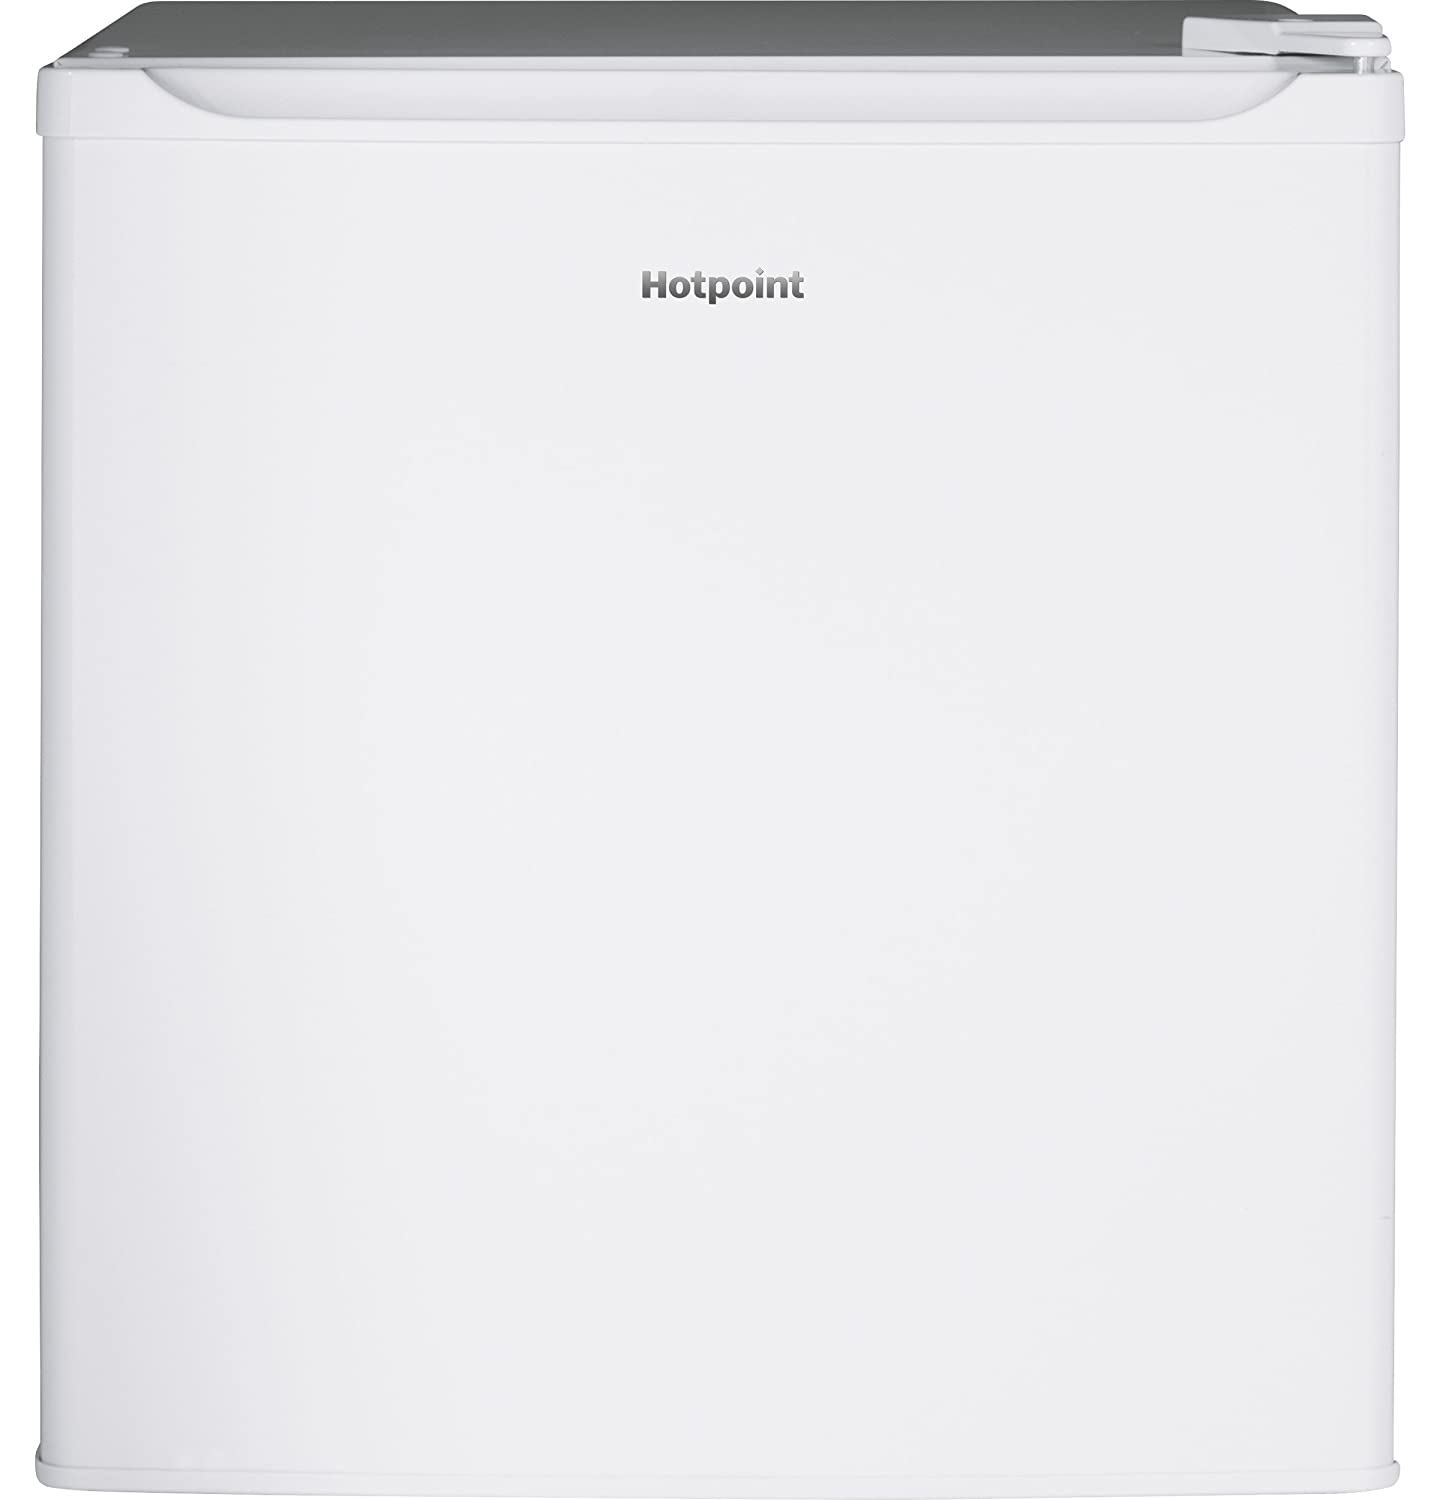 GE Hotpoint Energy Star Qualified Compact Refrigerator, 1.7 Cu Ft, White